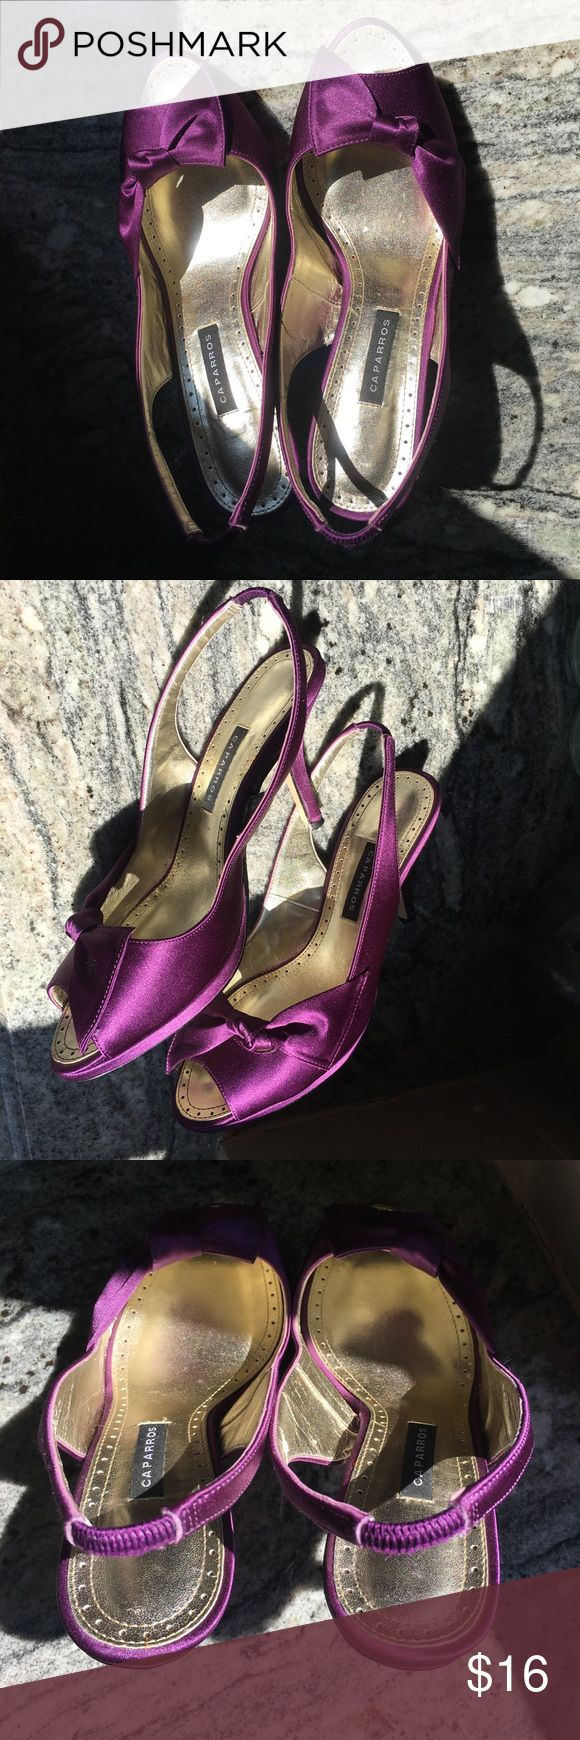 "Caparros Violet Satin Heels These Caparros ""Monet"" Violet Satin Heels are perfect as an accent to your outfit! Anyone who loves purple, will love these. They are in very good condition since I only wore them once to my wedding. Size 6.5. Caparros Shoes Heels"